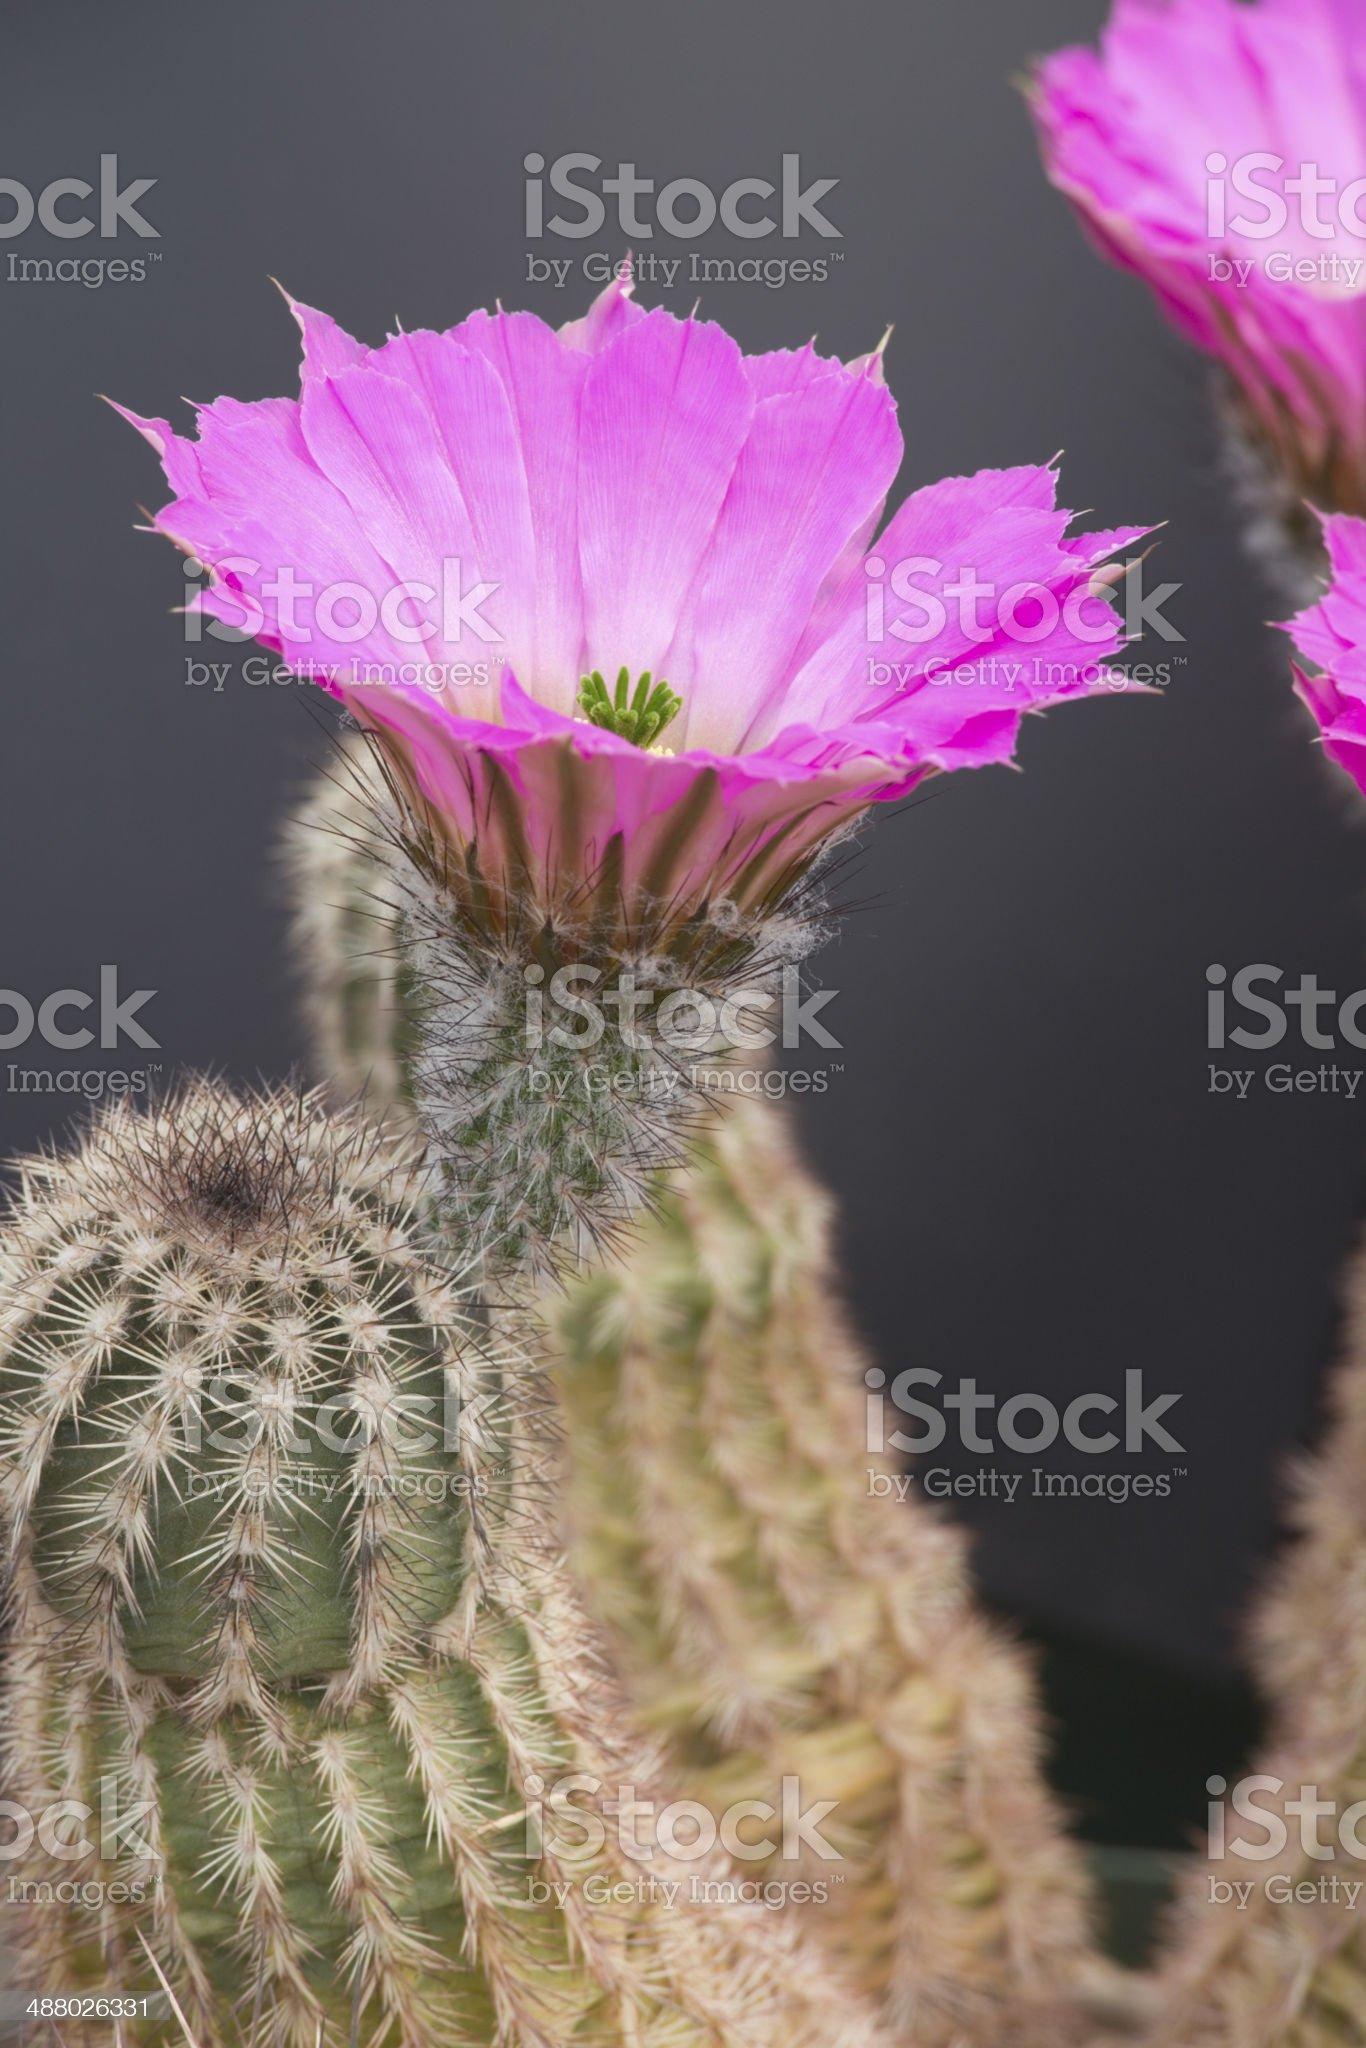 Cactus Flower, Petals, Pistil and Stamen Close-up royalty-free stock photo